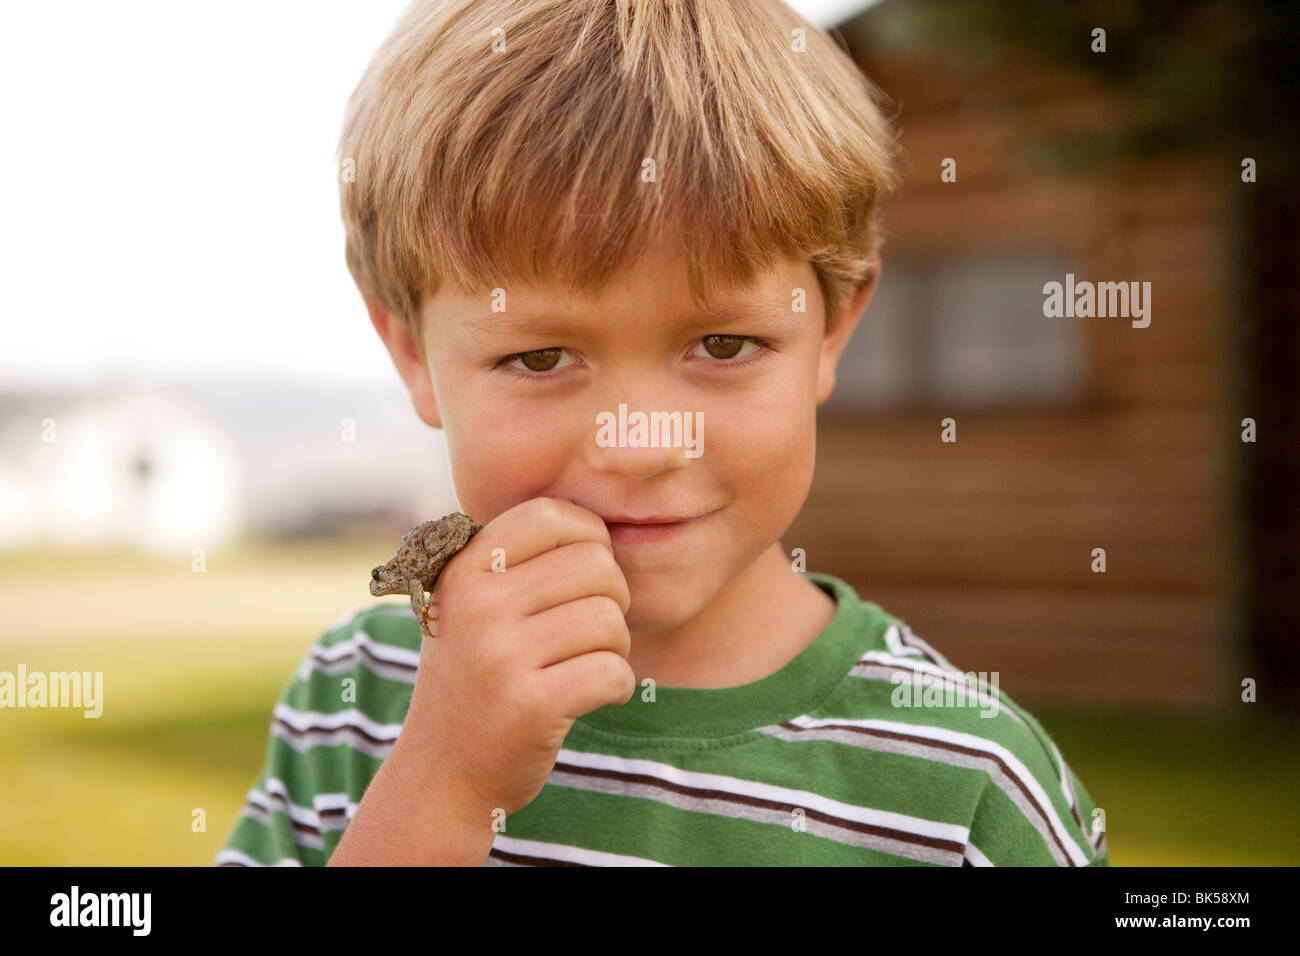 Boy with frog in hand - Stock Image